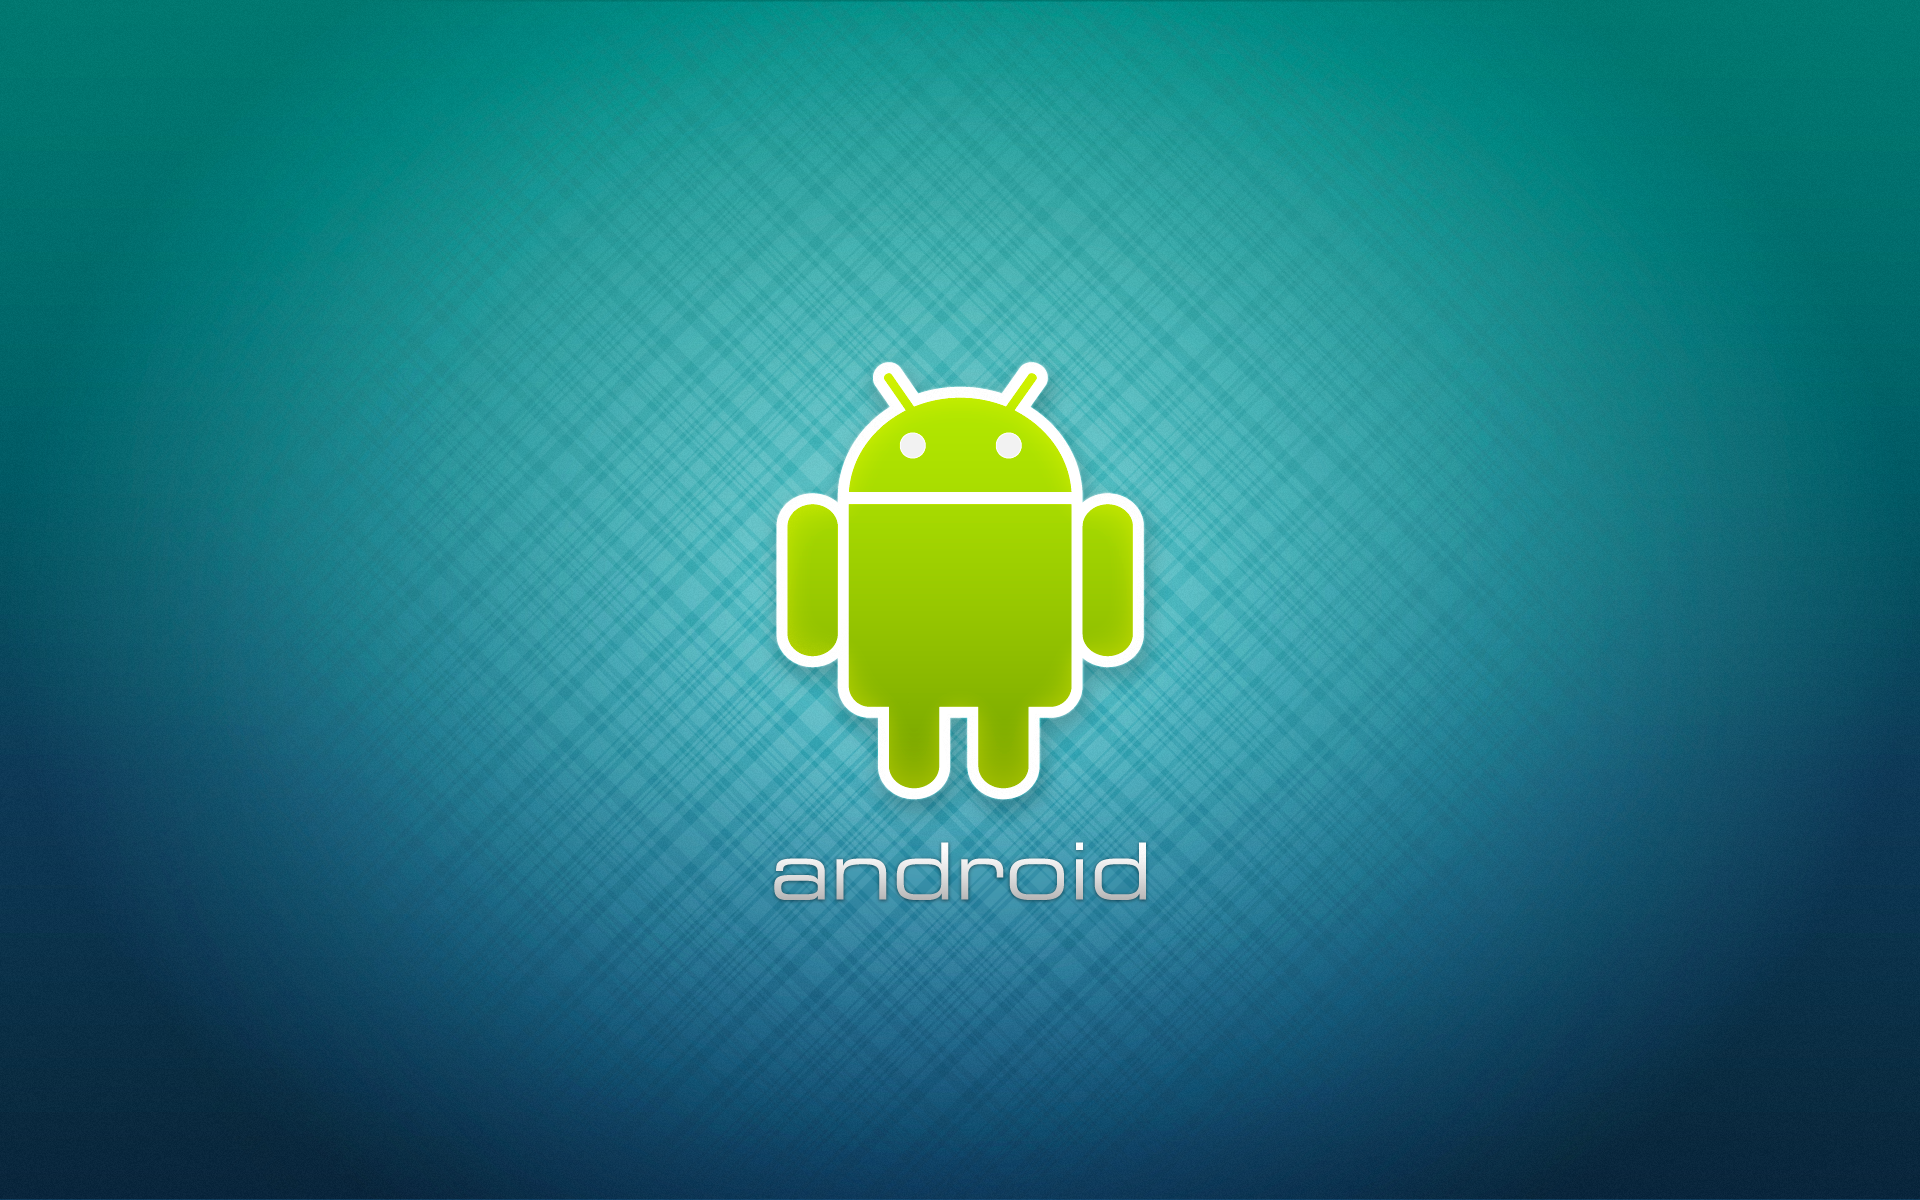 Download High Quality Android Wallpapers   Desktop Wallpapers Blogs 1920x1200